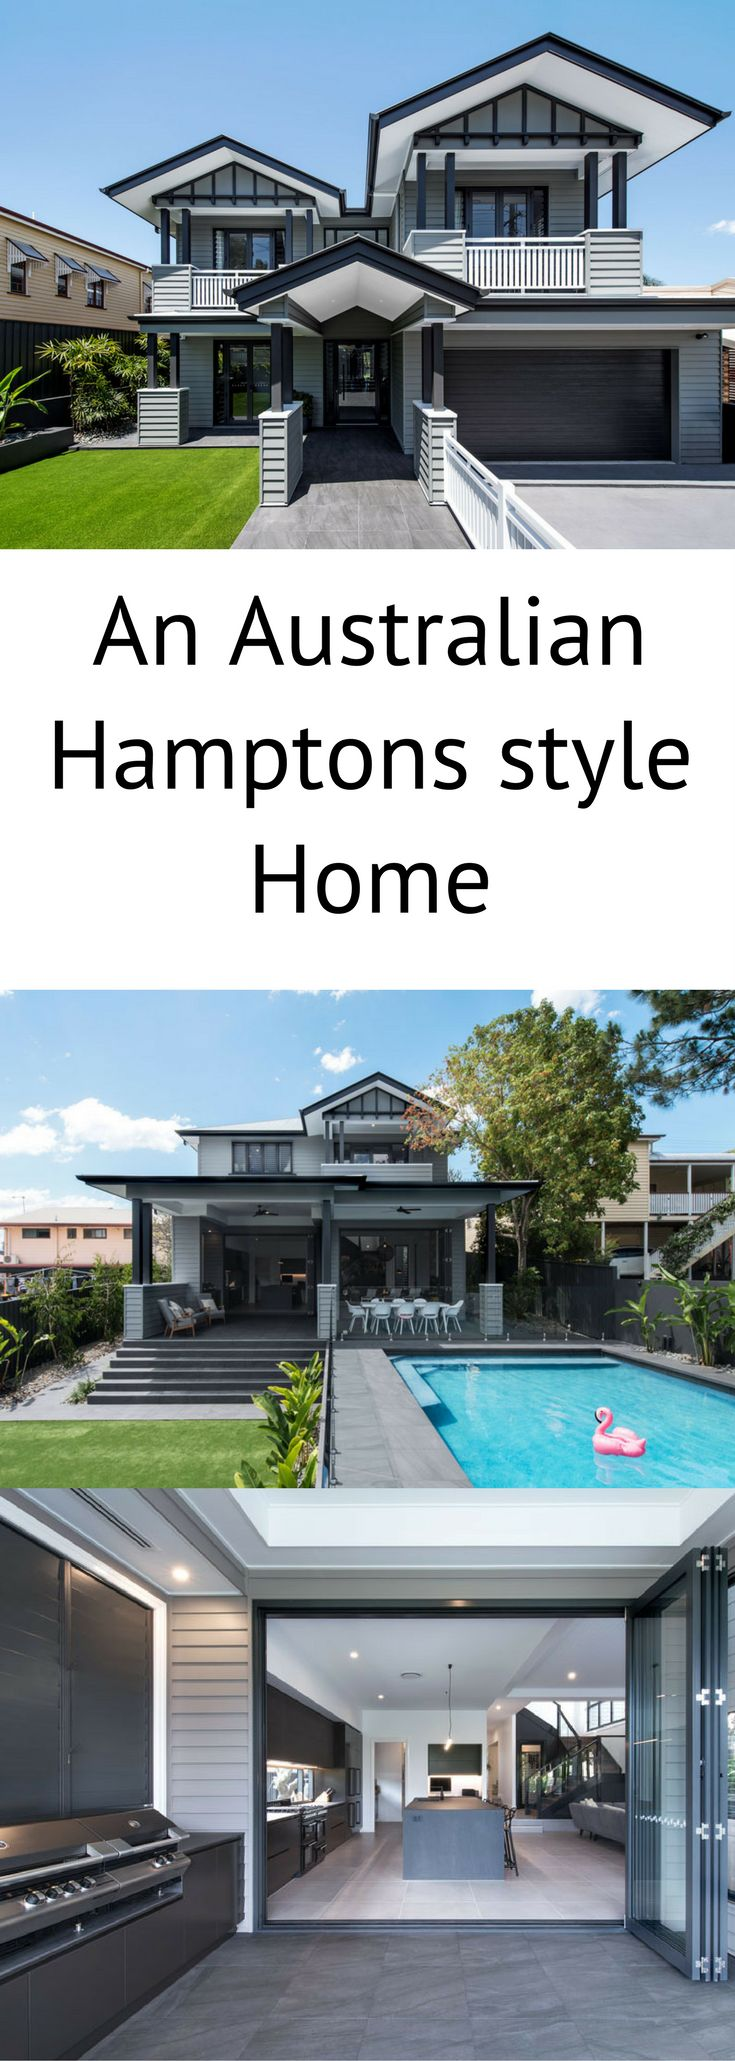 Proudly positioned in a quiet street in the riverside suburb of Bulimba, this two-storey family home utilises modern fibre cement cladding to achieve a Hamptons look with an Australian twist.